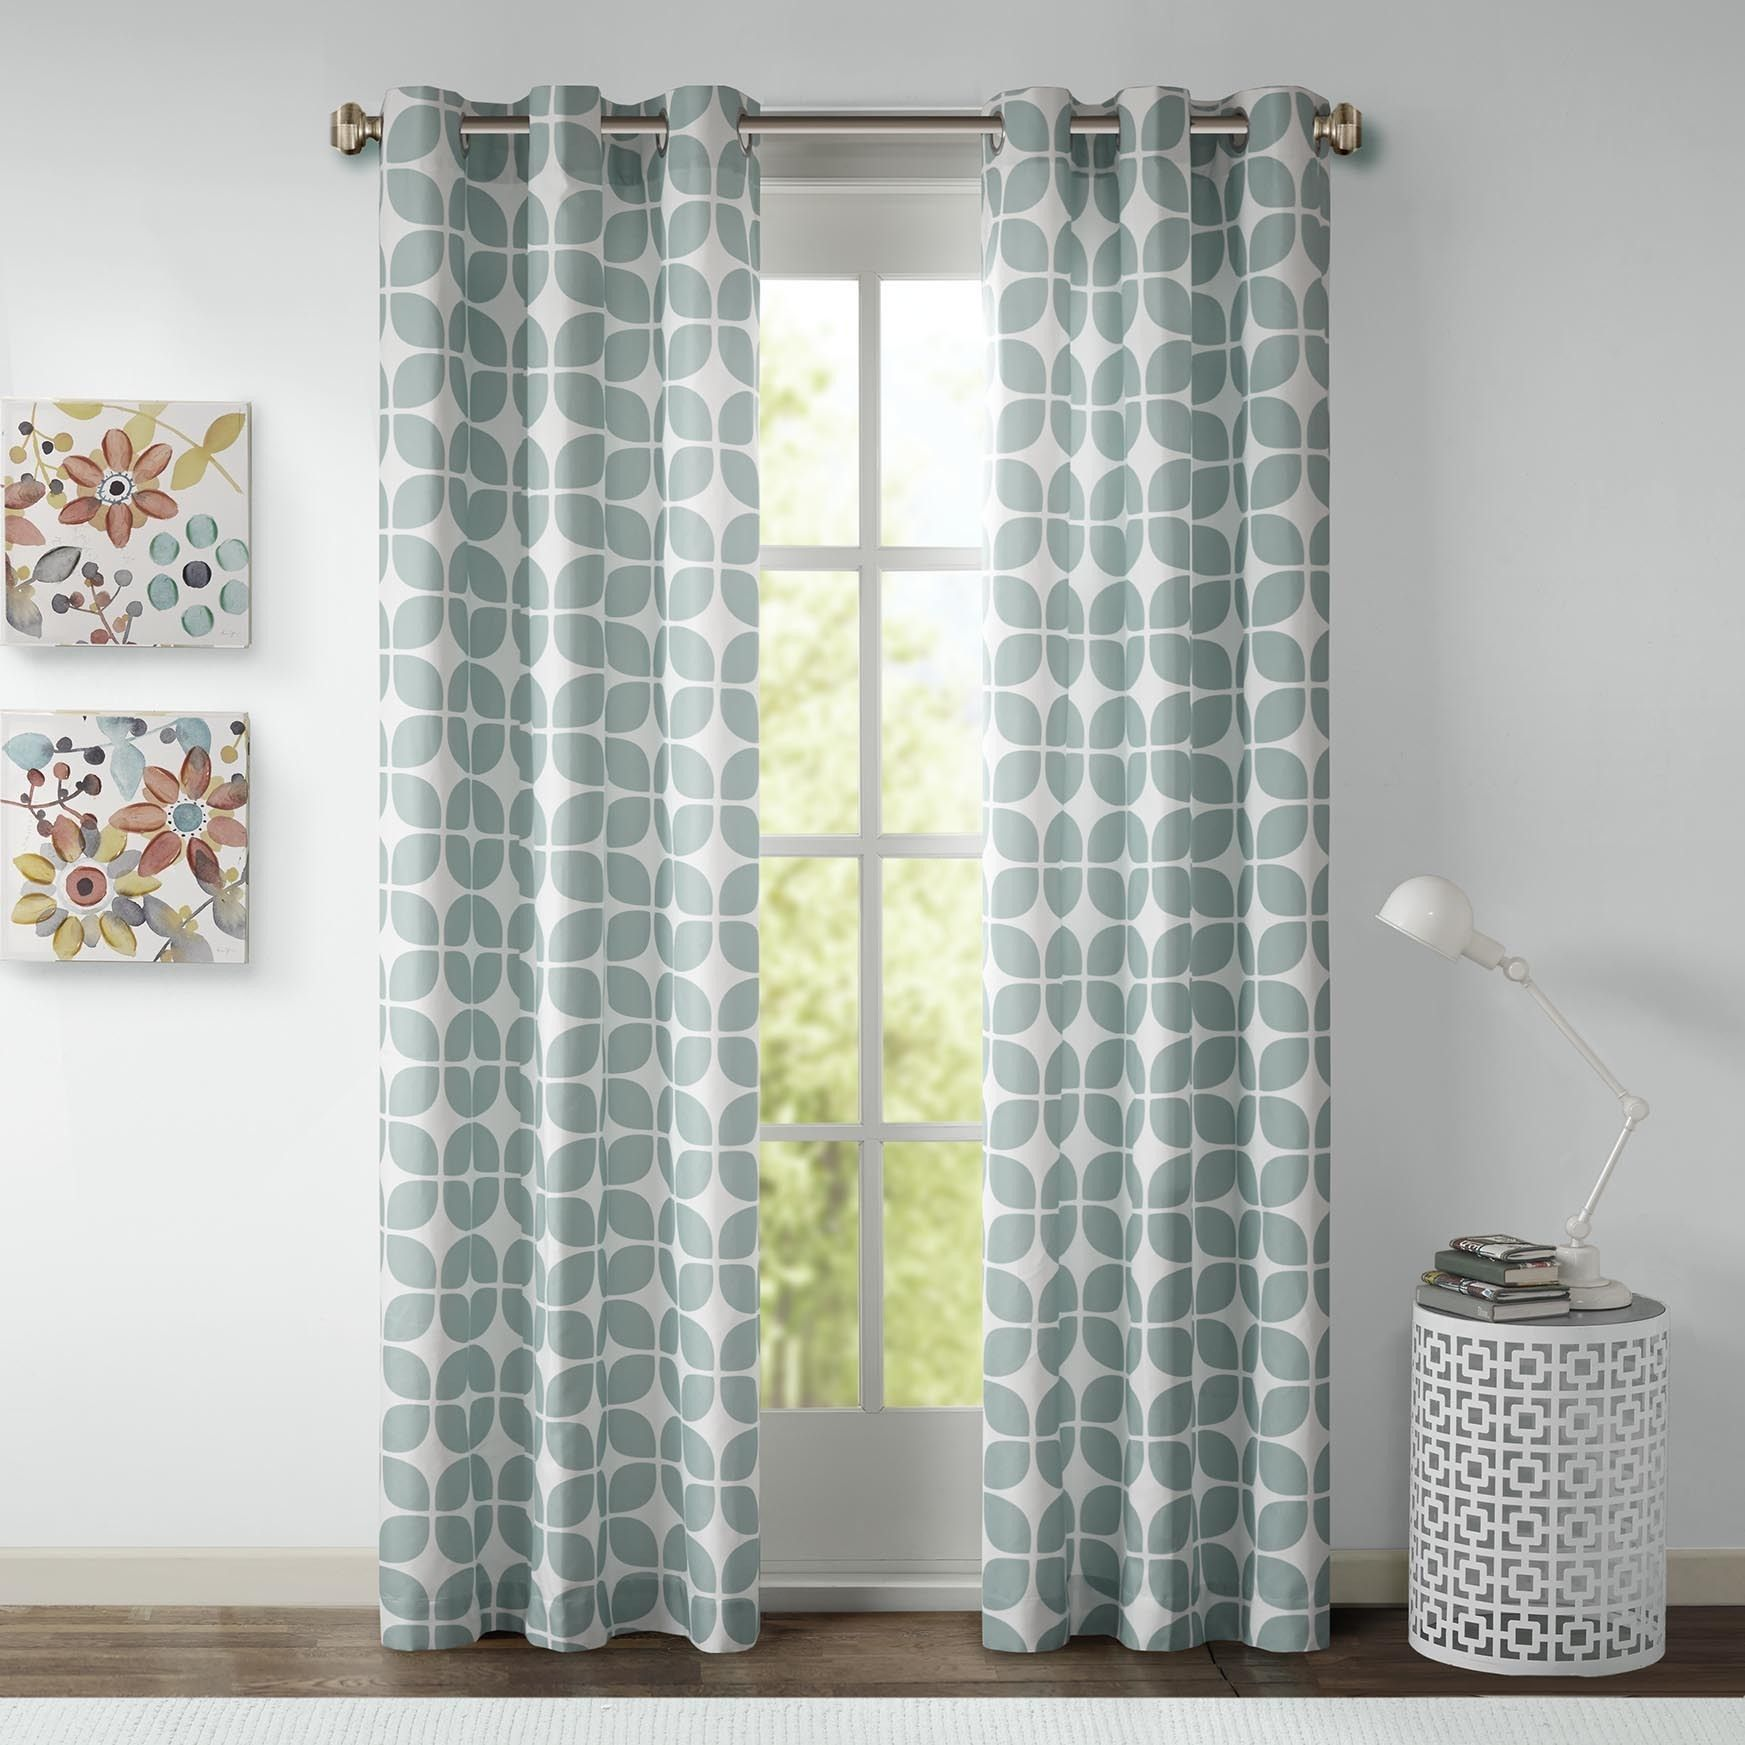 making ideas to xf guide patterns curtains out how fun and for sheets concept make incredible nosew diys of